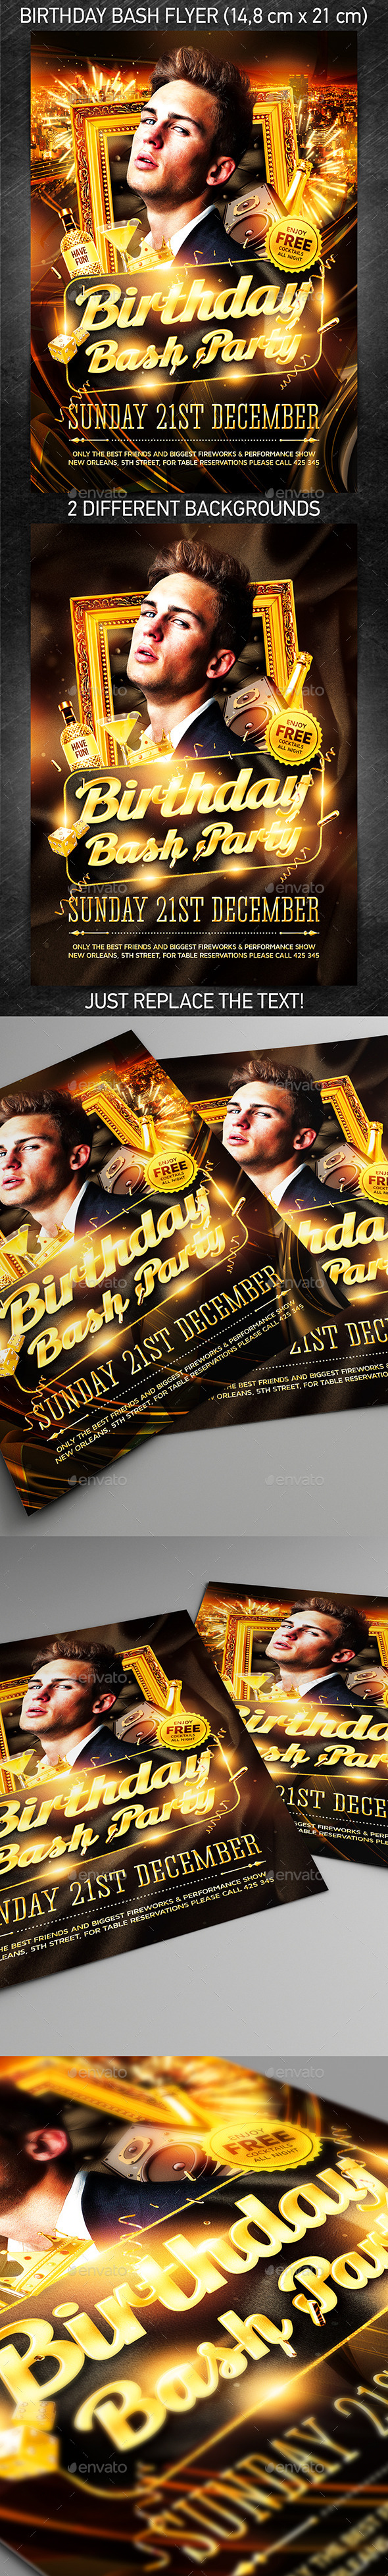 Birthday Bash Party Flyer - Flyers Print Templates